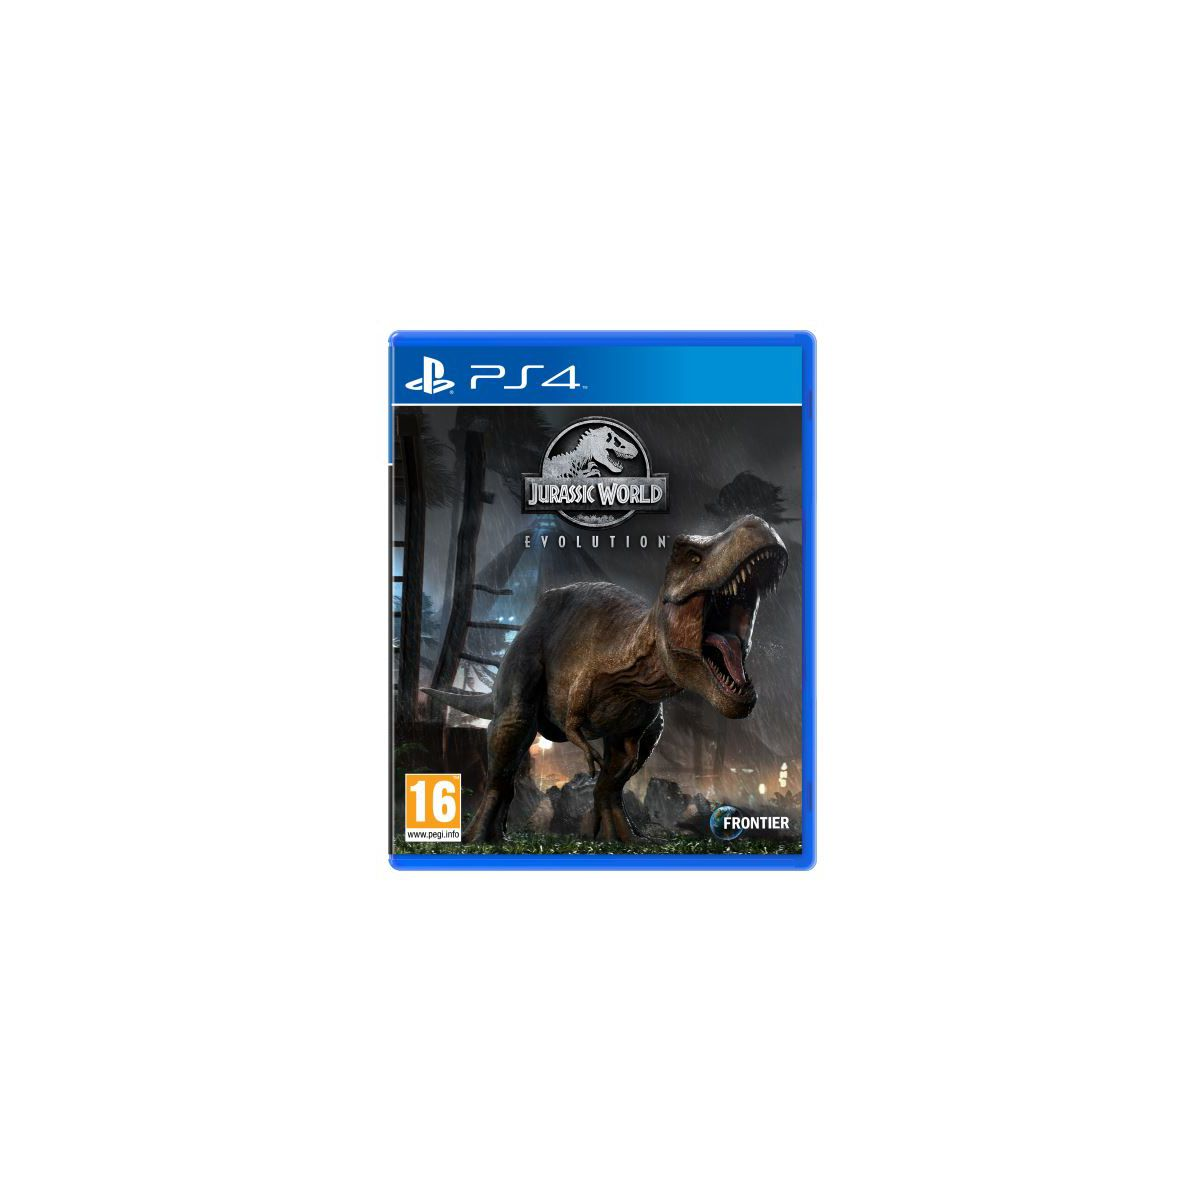 Jeu PS4 JUST FOR GAMES Jurassic World Evolution (photo)